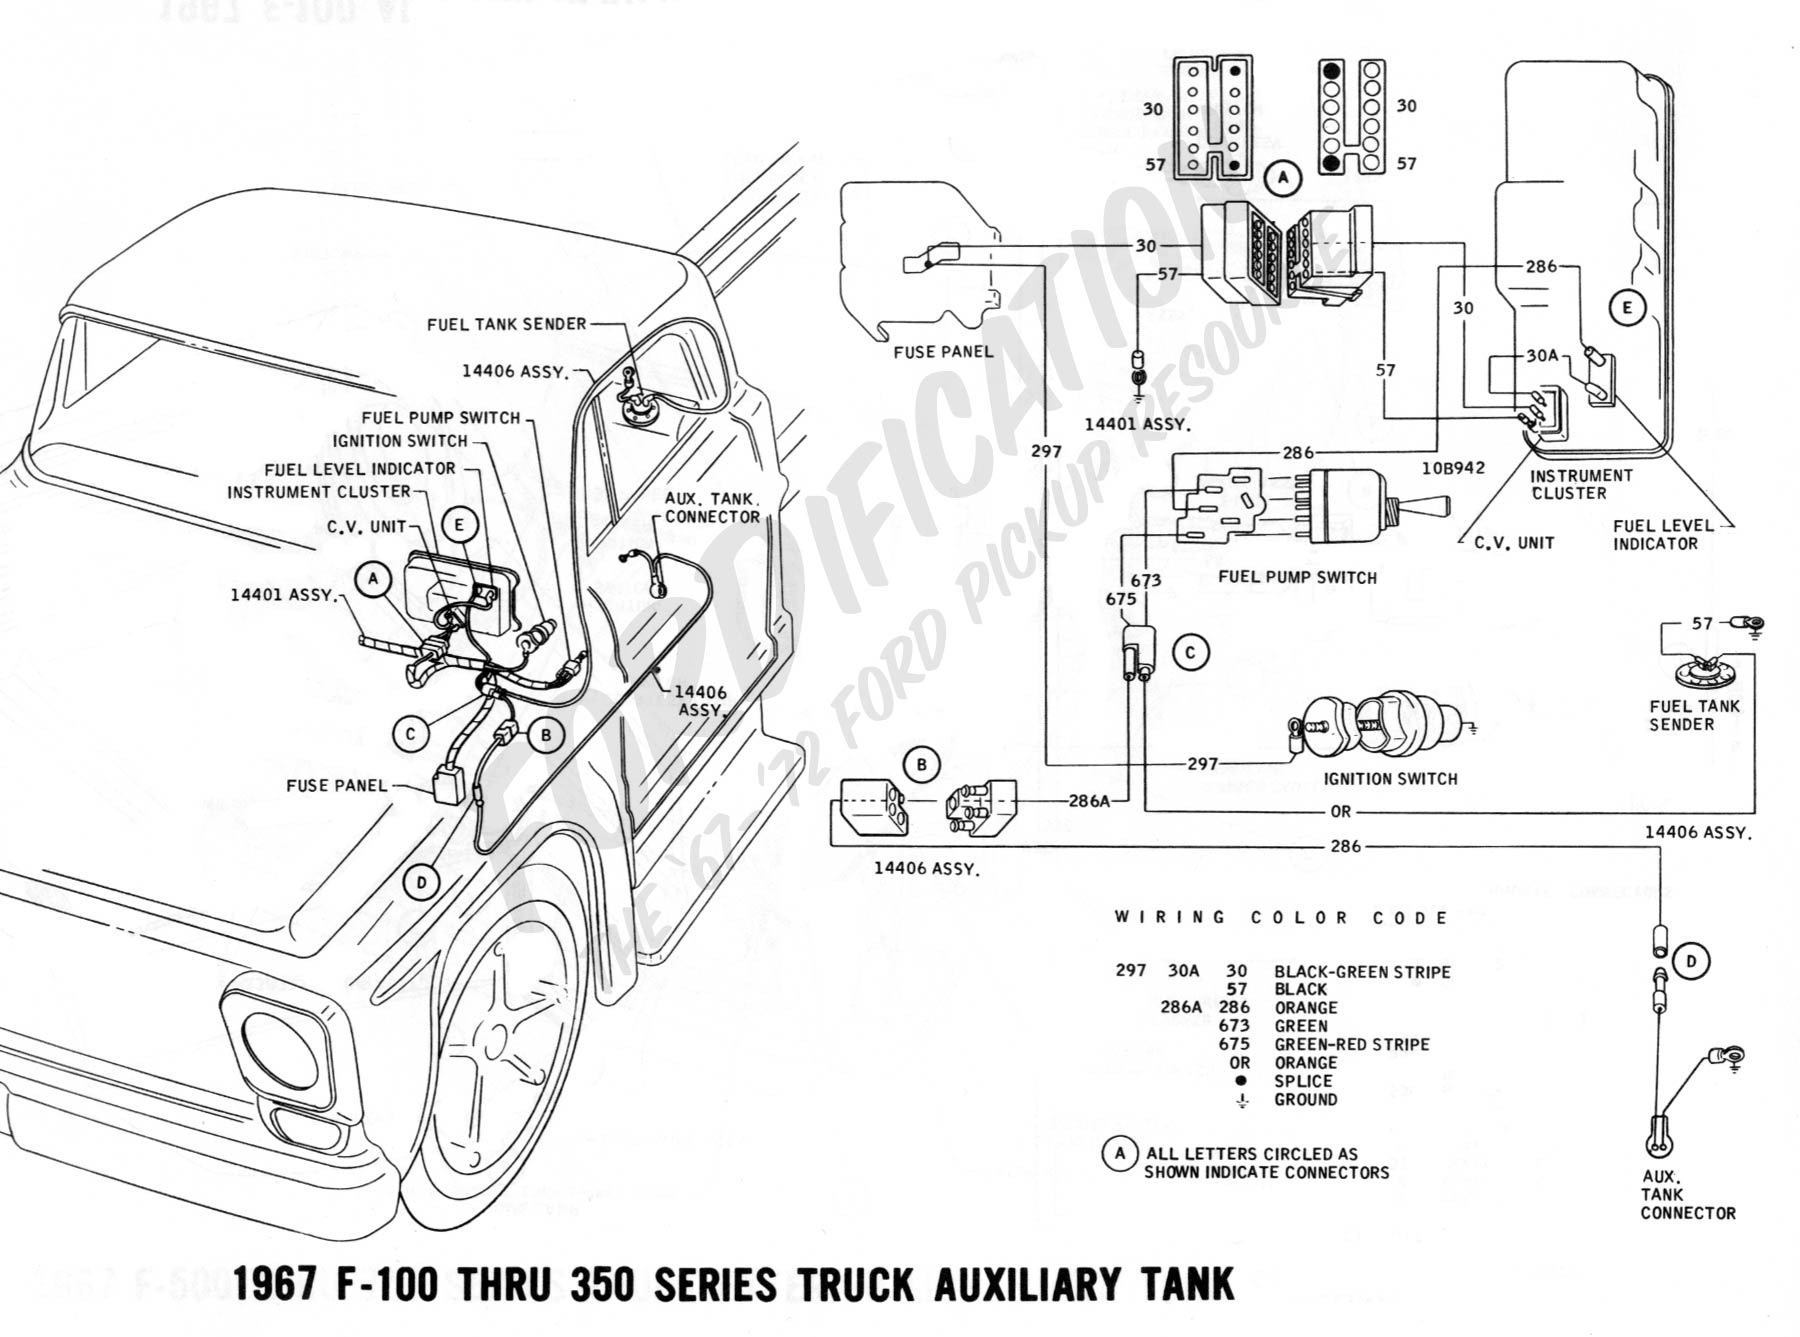 1989 Omc Wiring Diagram Content Resource Of 1978 Ford Truck Technical Drawings And Schematics Section H 1993 Bass Tracker Boat Ignition